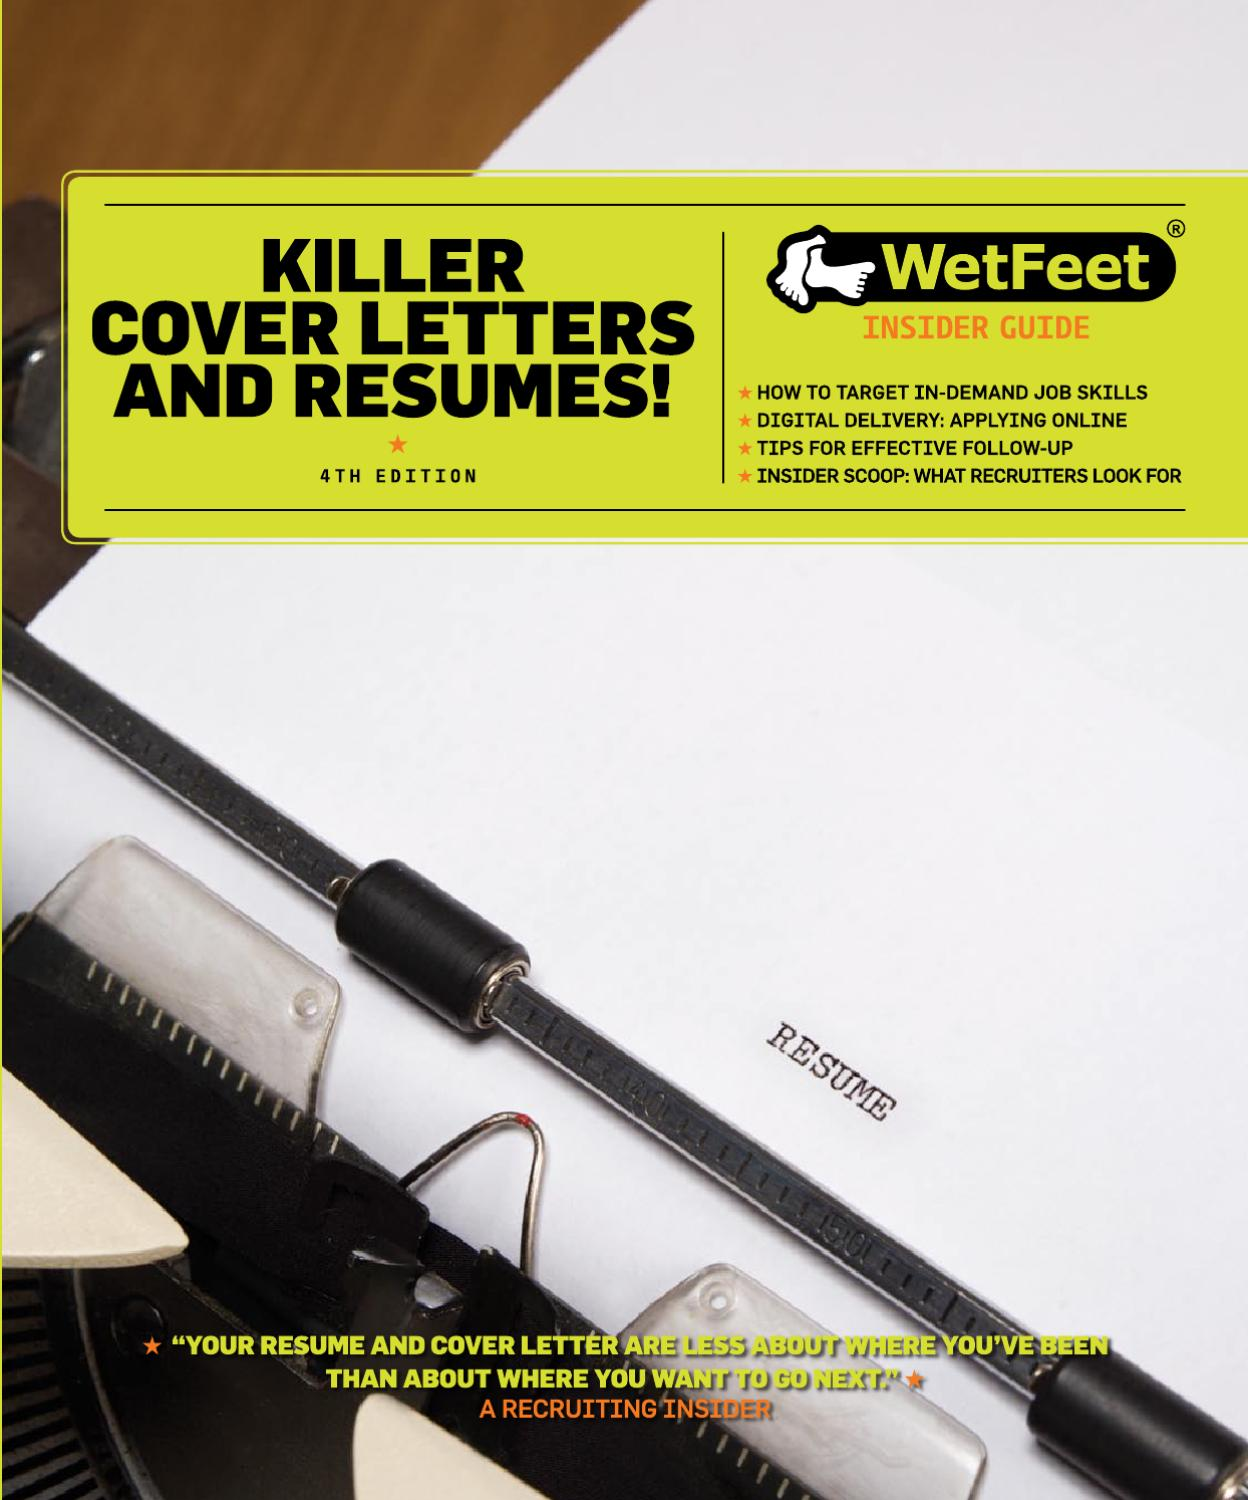 Killer Cover Letters And Resumes by Universum - issuu